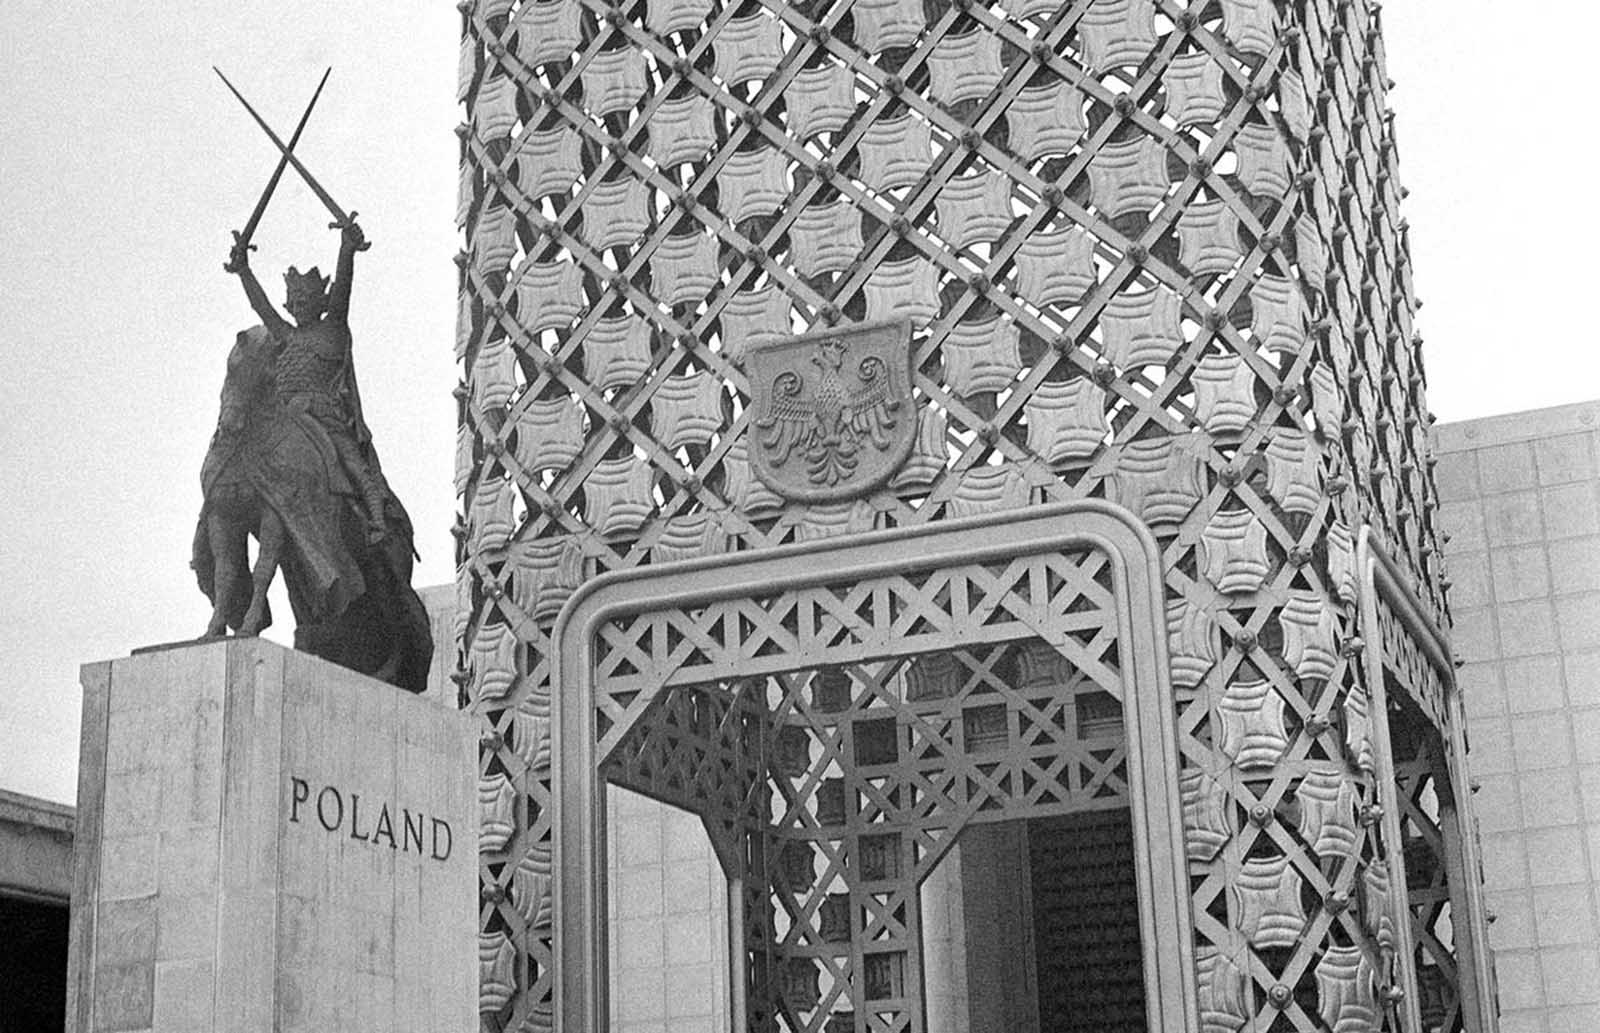 Poland's pavilion at the New York World's Fair.